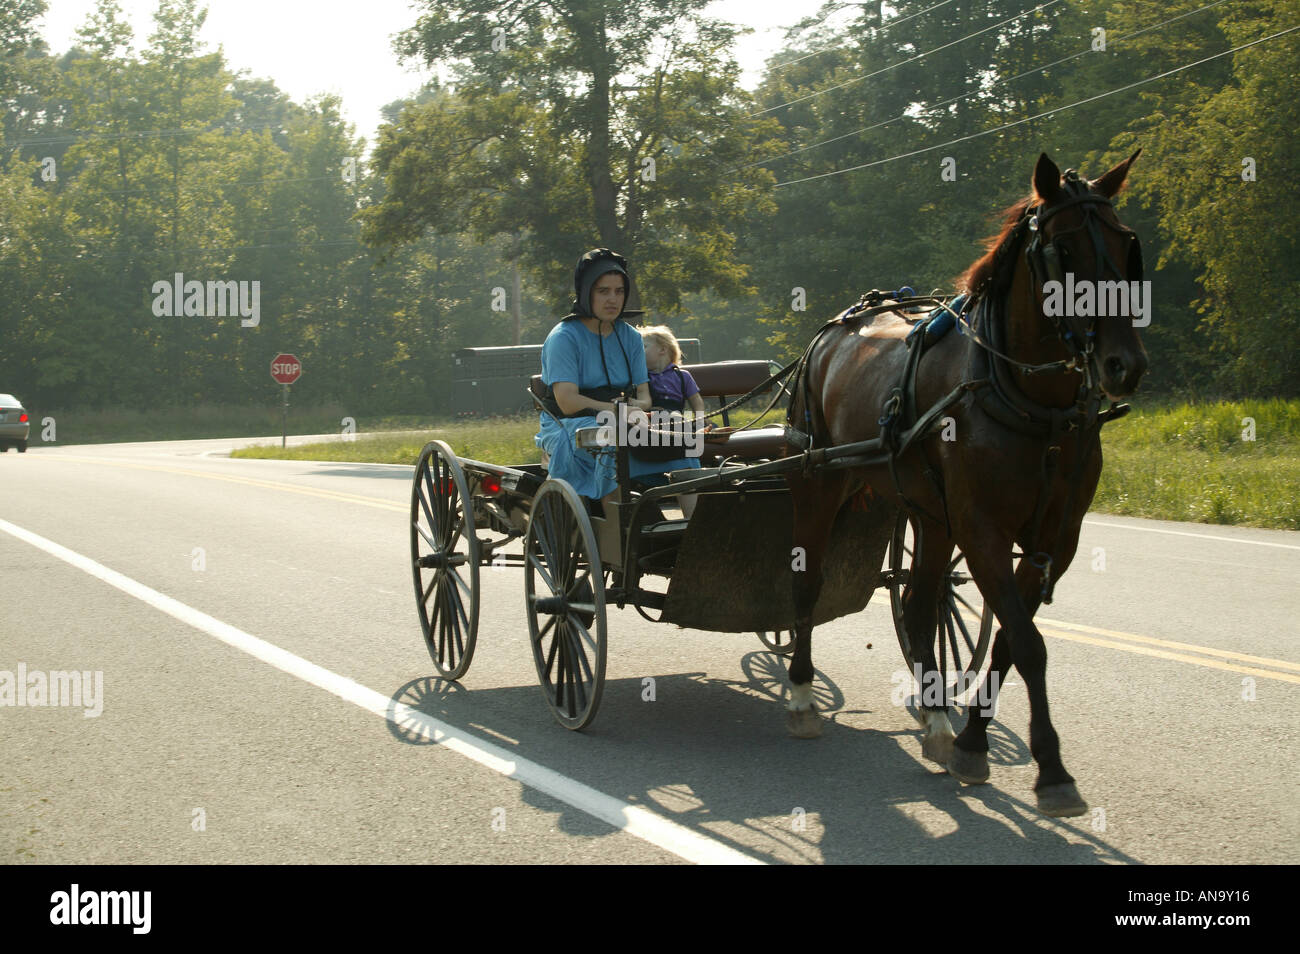 amish people travelling by horse and cart in maryland usa - Stock Image